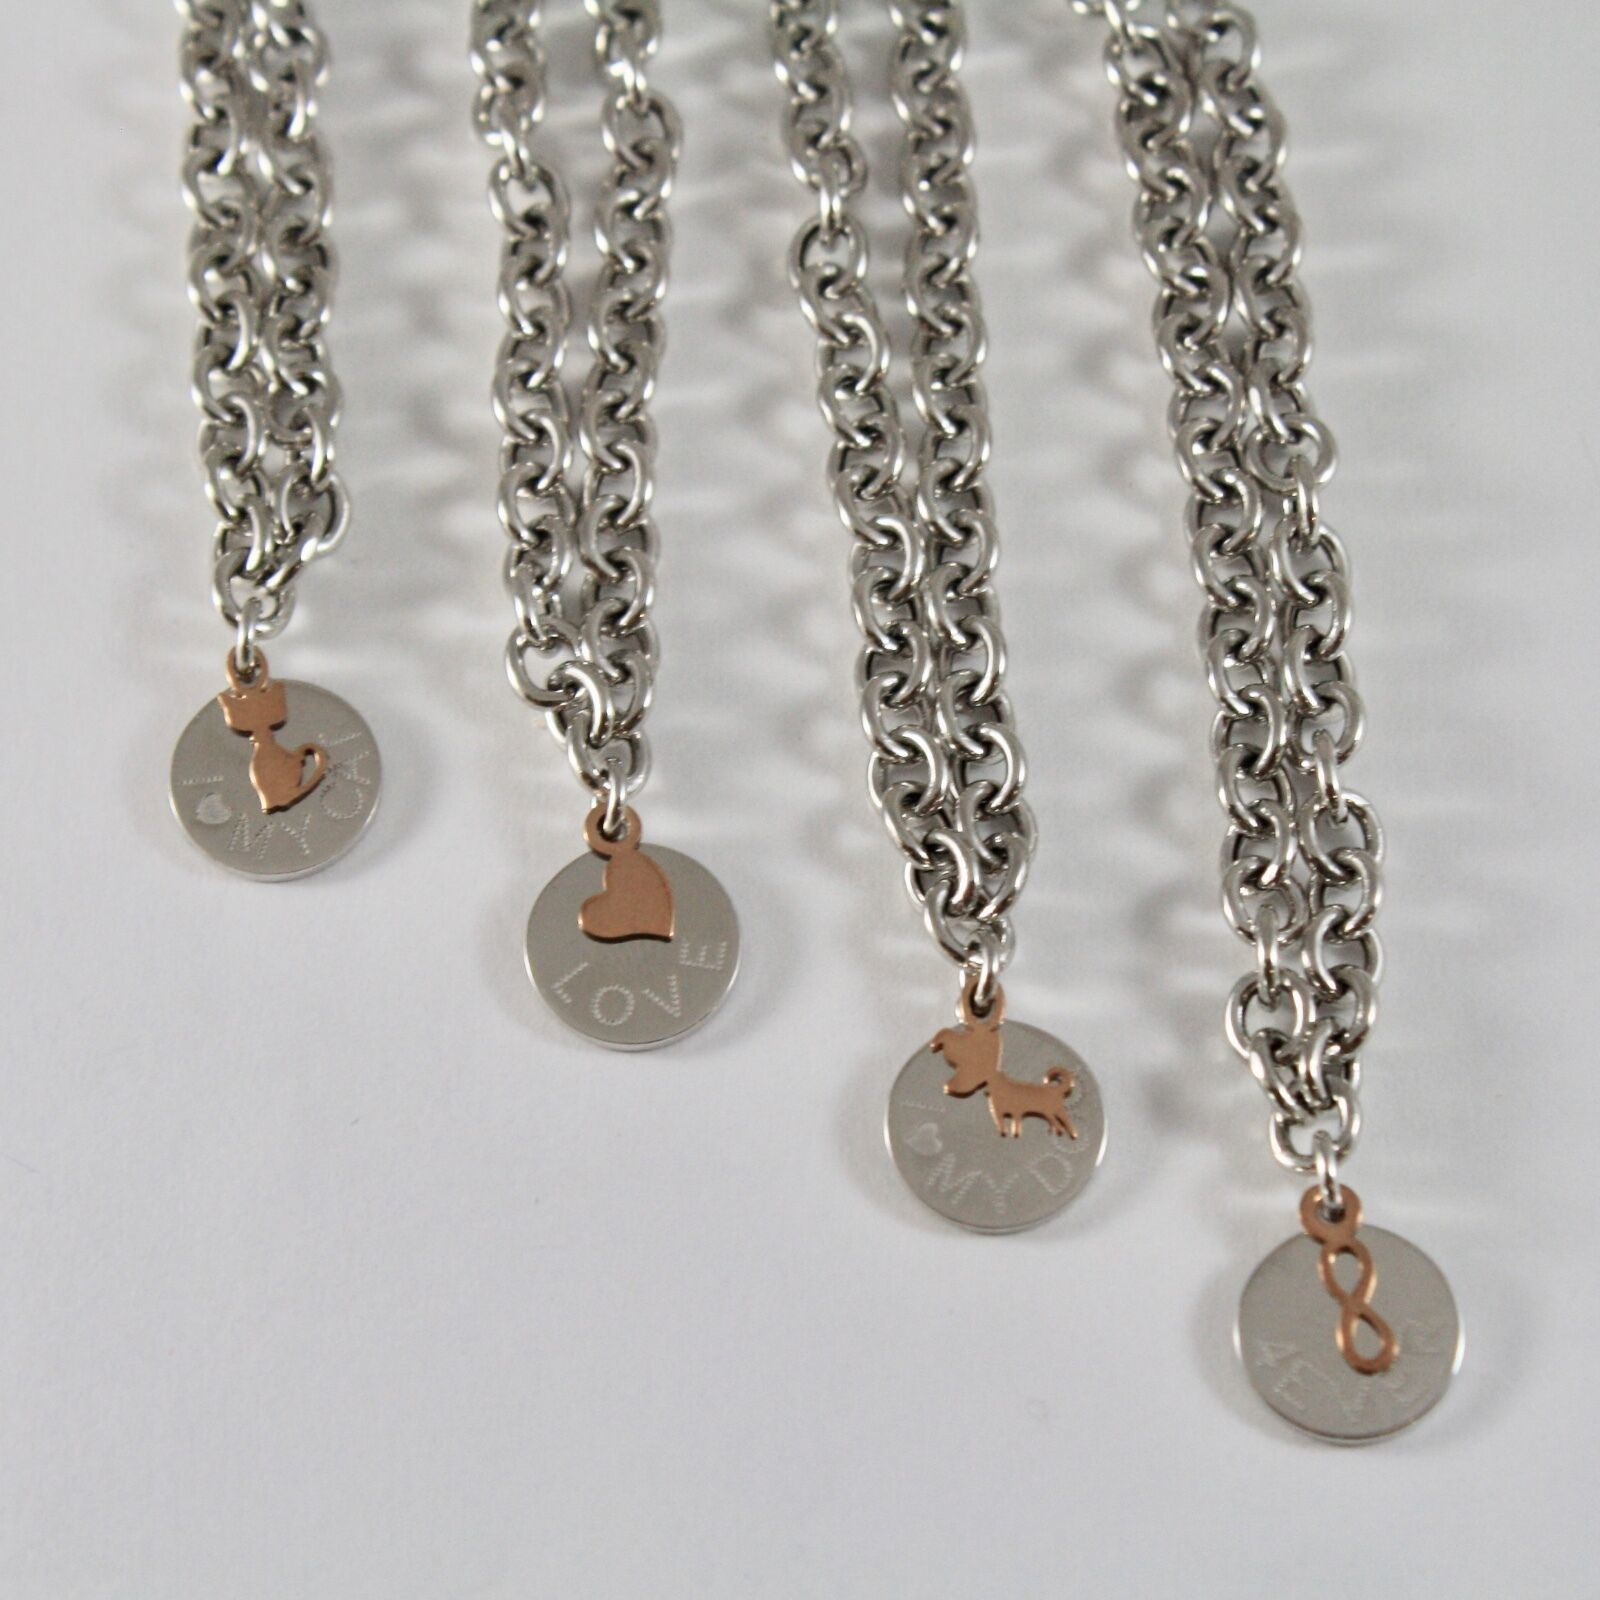 SILVER 925 BRACELET JACK&CO JERSEY INTO RINGS AND PENDANT GOLD PINK 9 CARATS